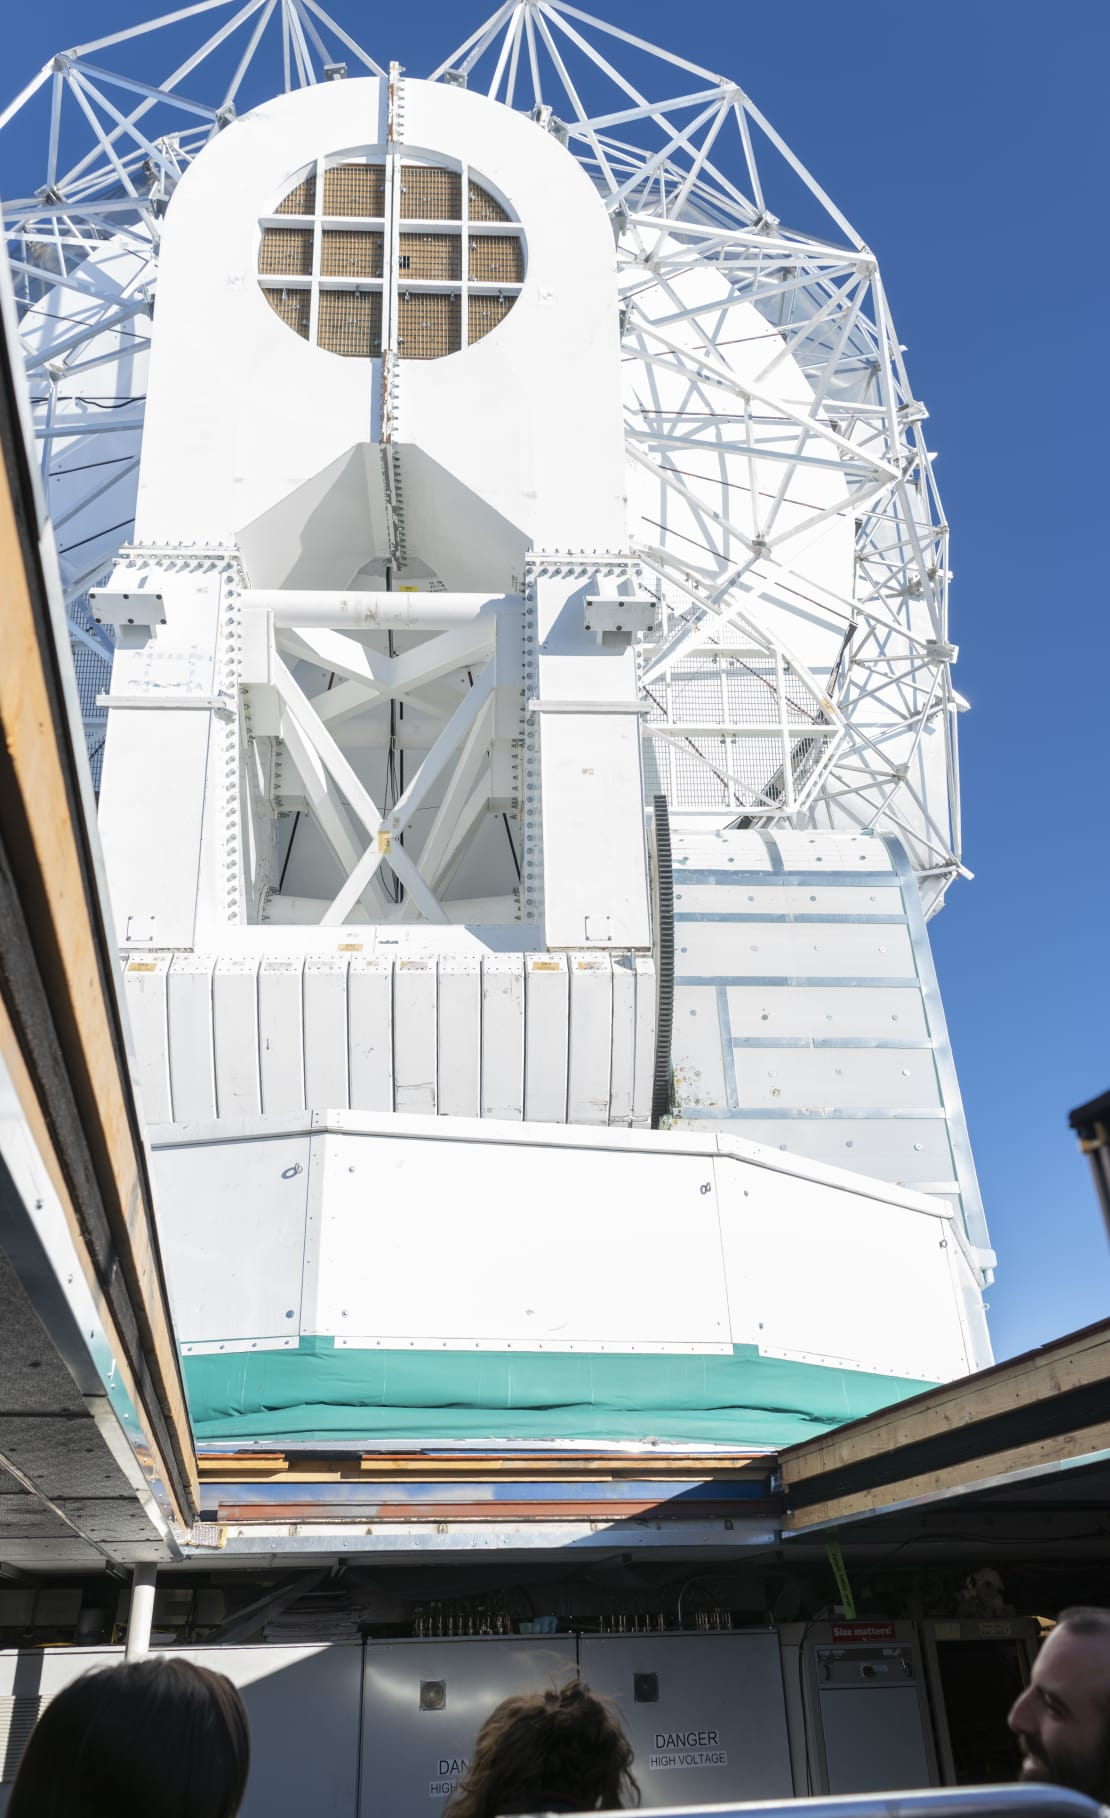 View of South Pole Telescope from below through opened roof.